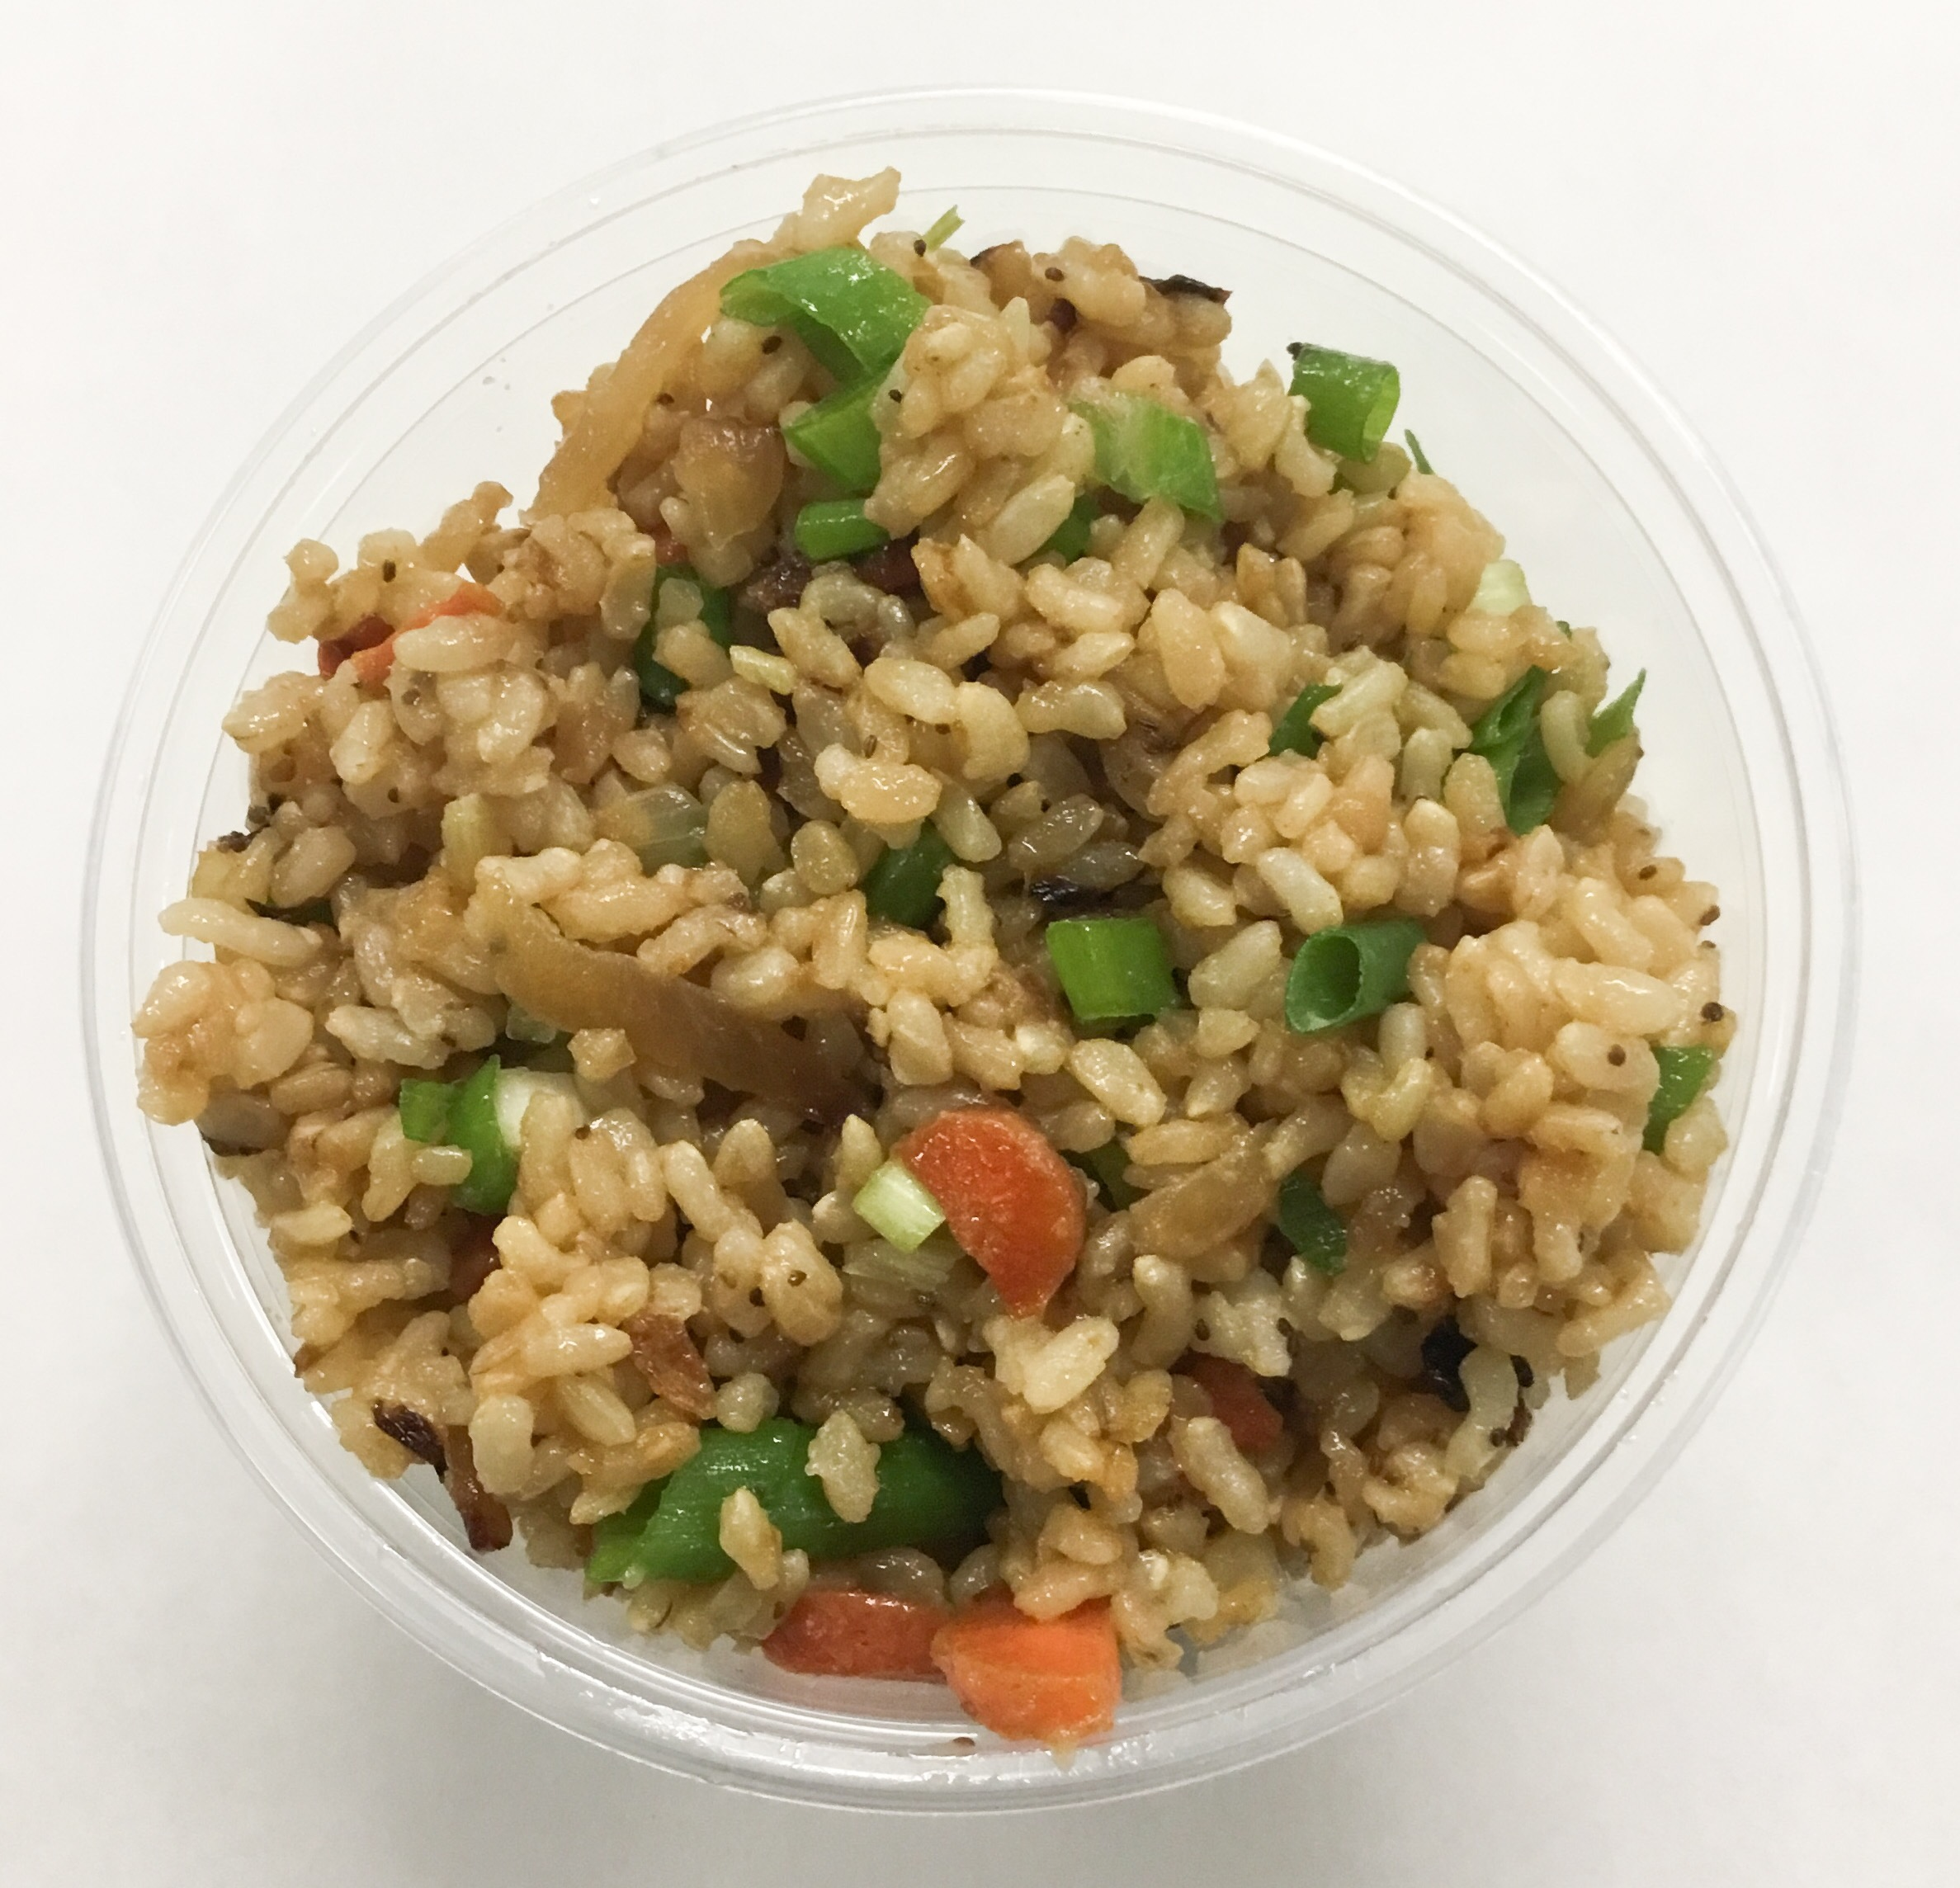 Stir fried brown rice wit onion, carrot and scallions.